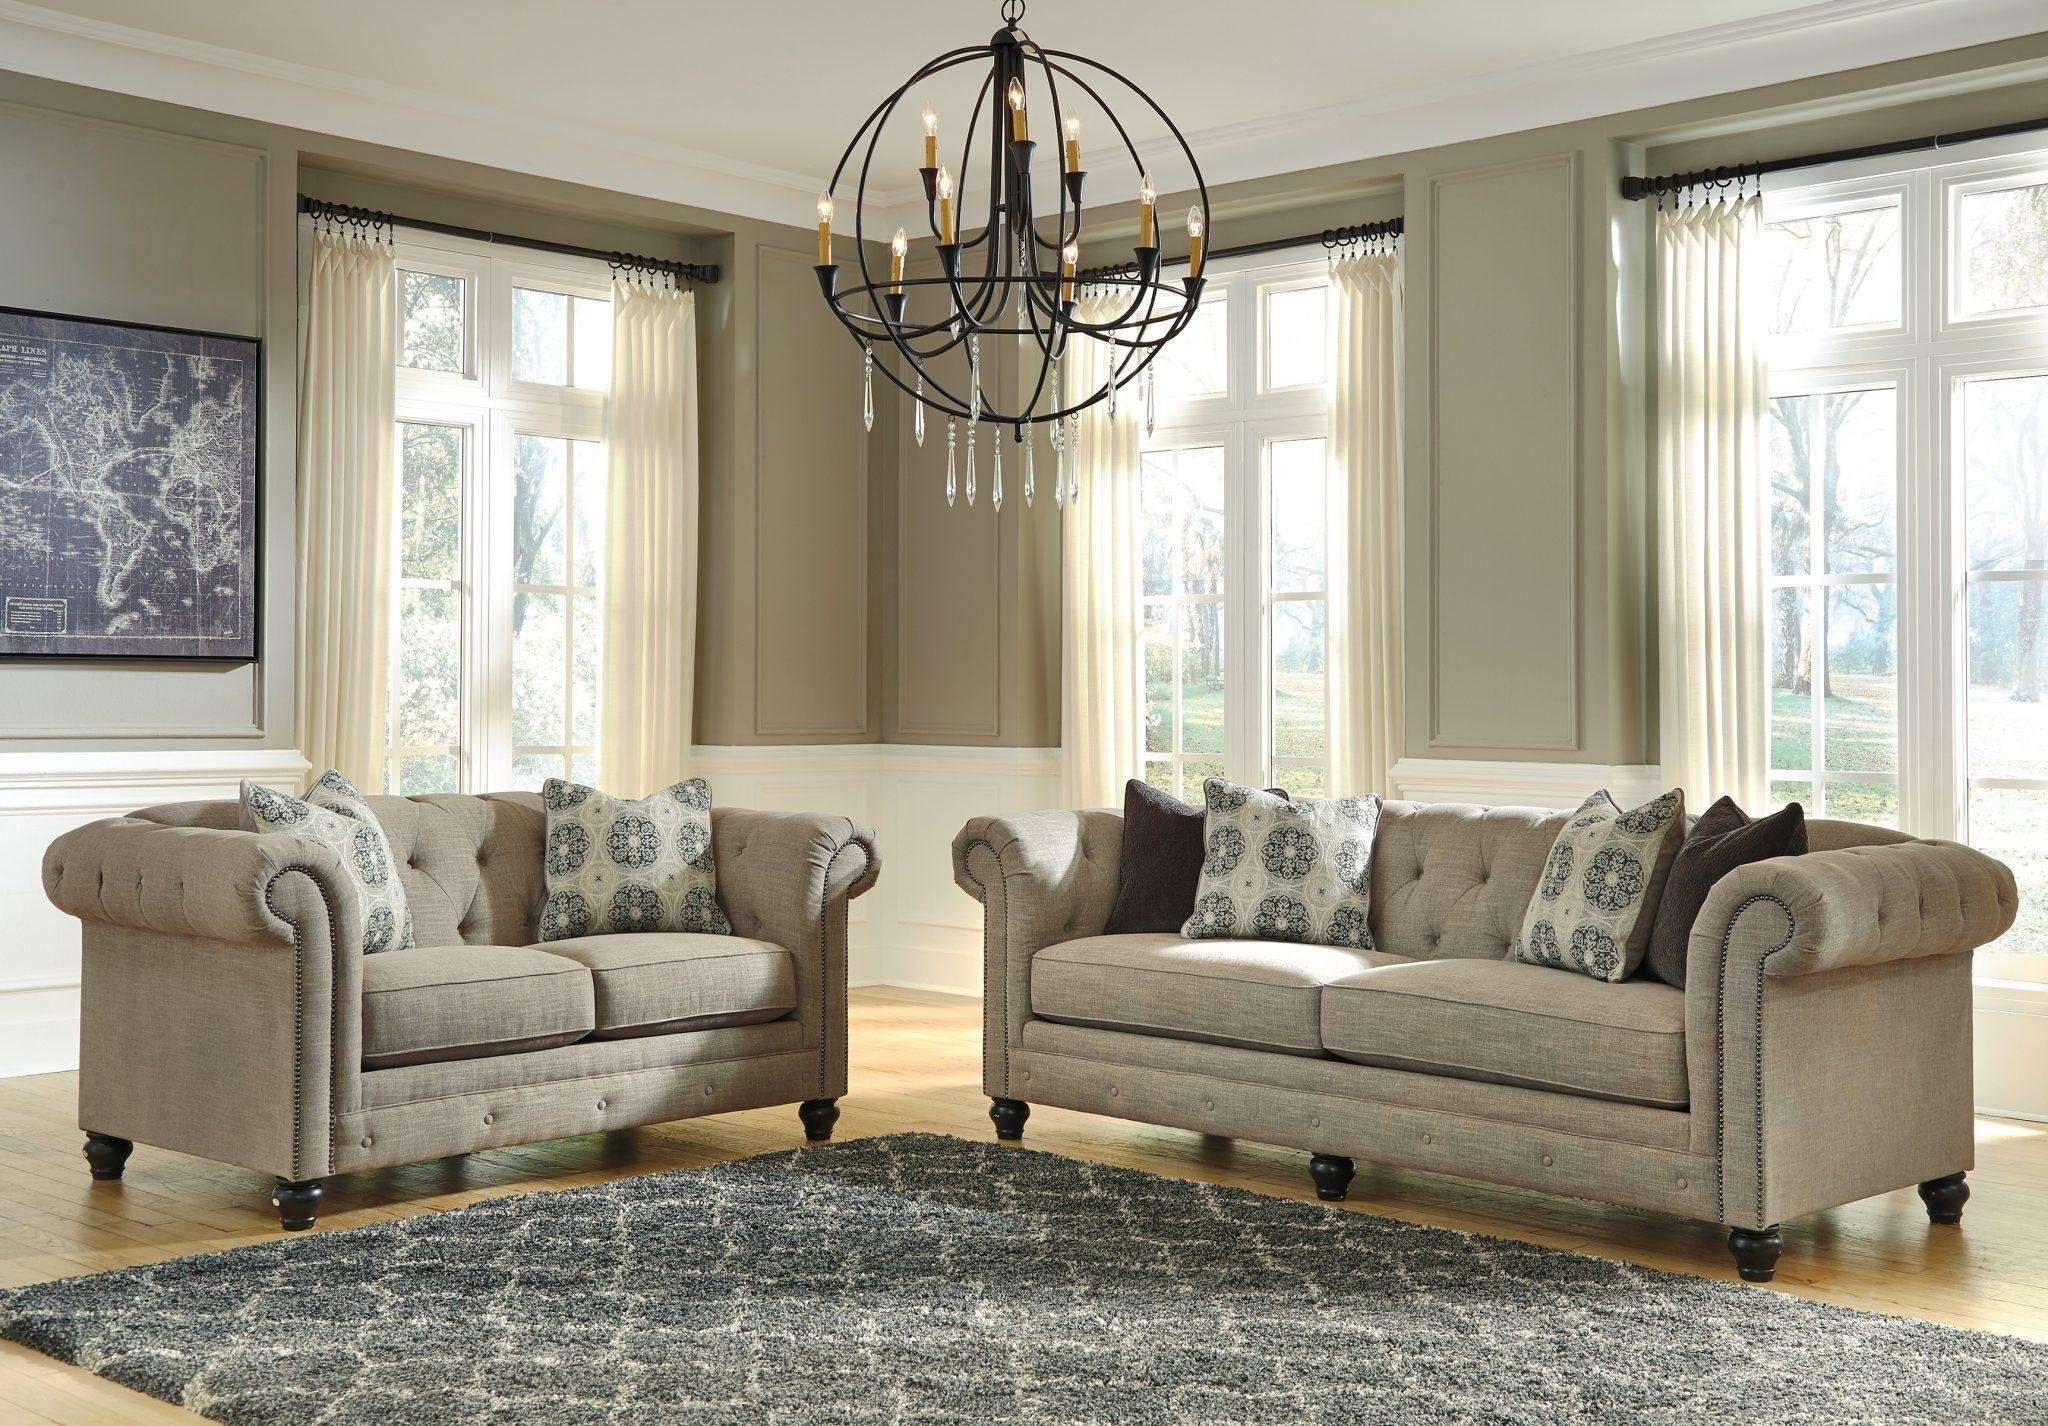 Best Furniture Mentor Oh: Furniture Store – Ashley Furniture Within Ashley Tufted Sofa (Image 12 of 20)